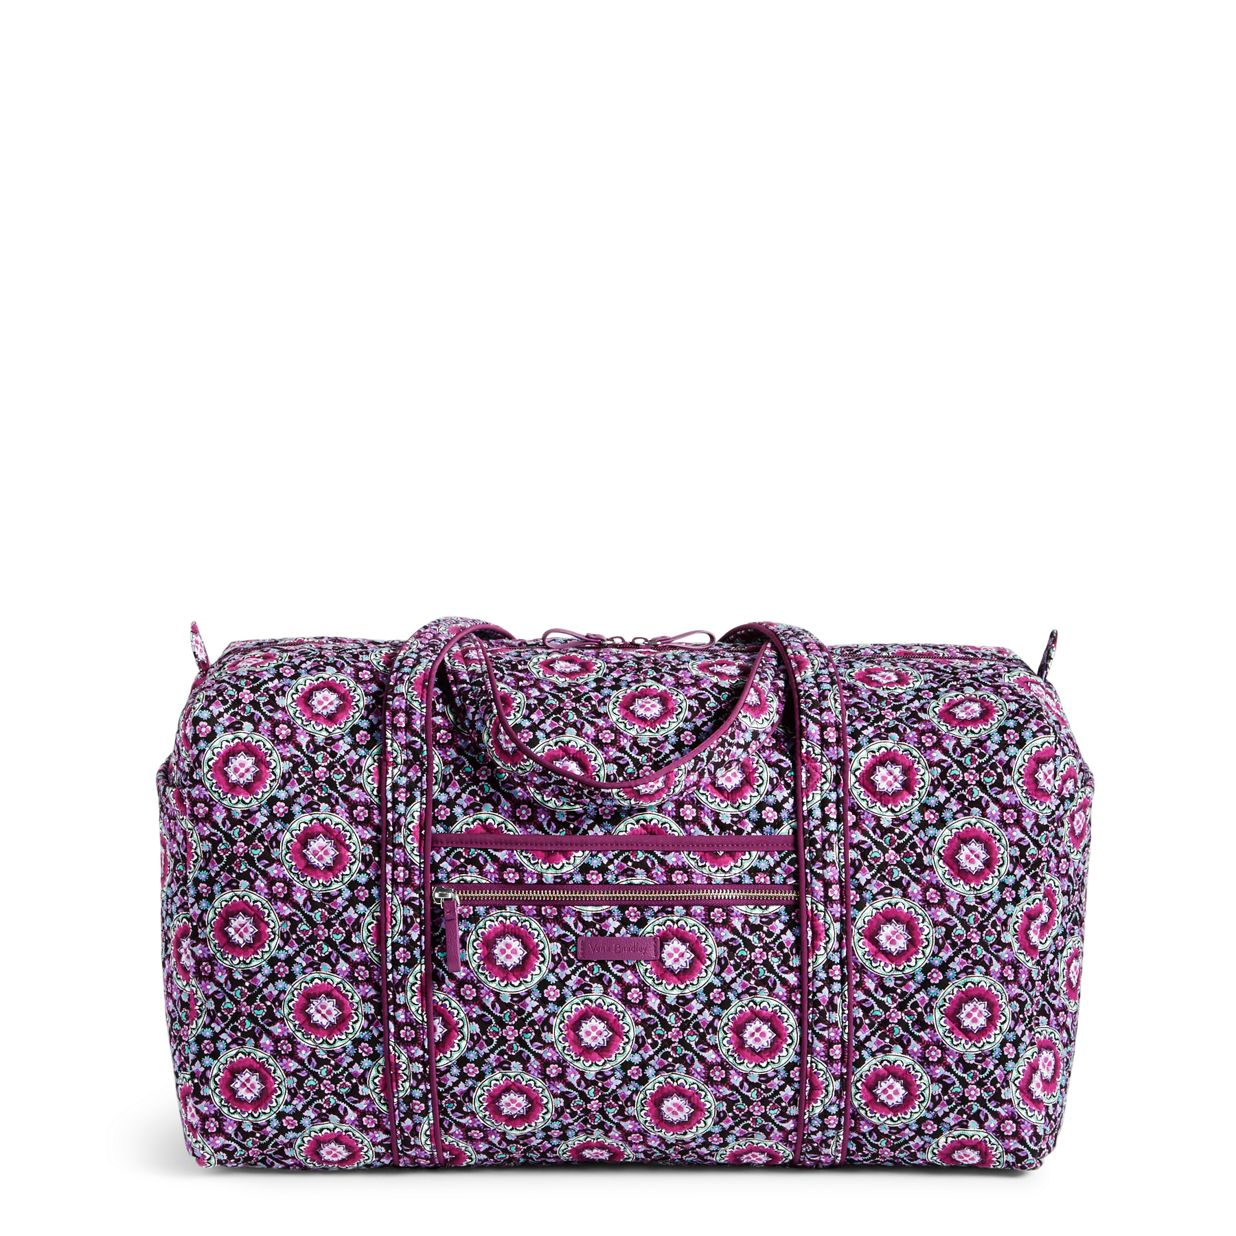 Image of Iconic Large Travel Duffel in Lilac Medallion 09c501c64314a